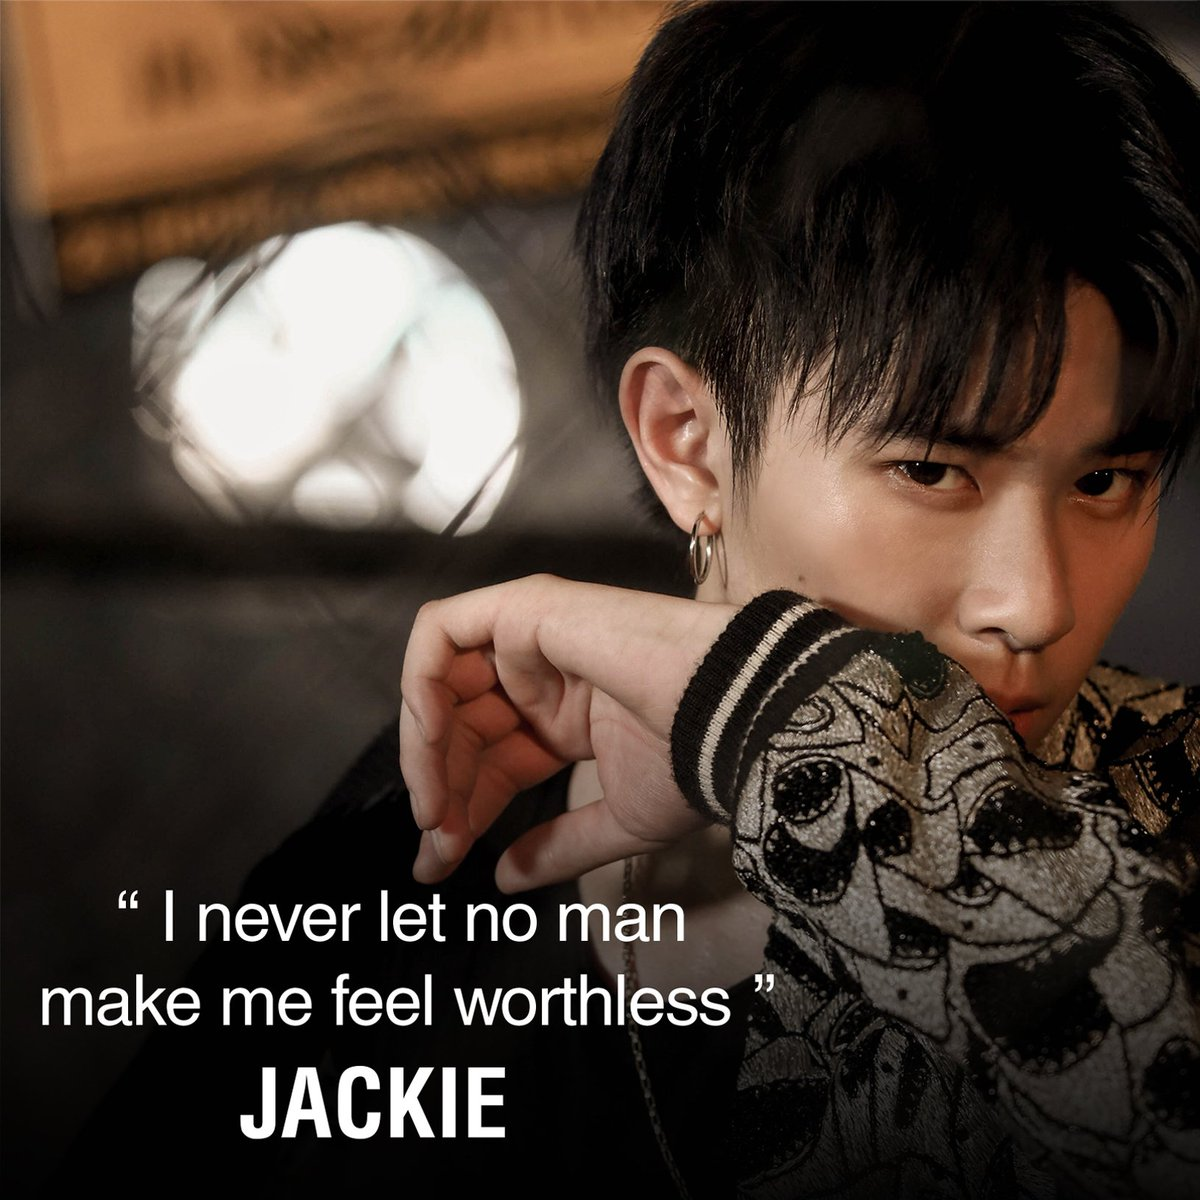 """""""I never let no man make me feel worthless""""  - Jackie  . Watch TRINITY 